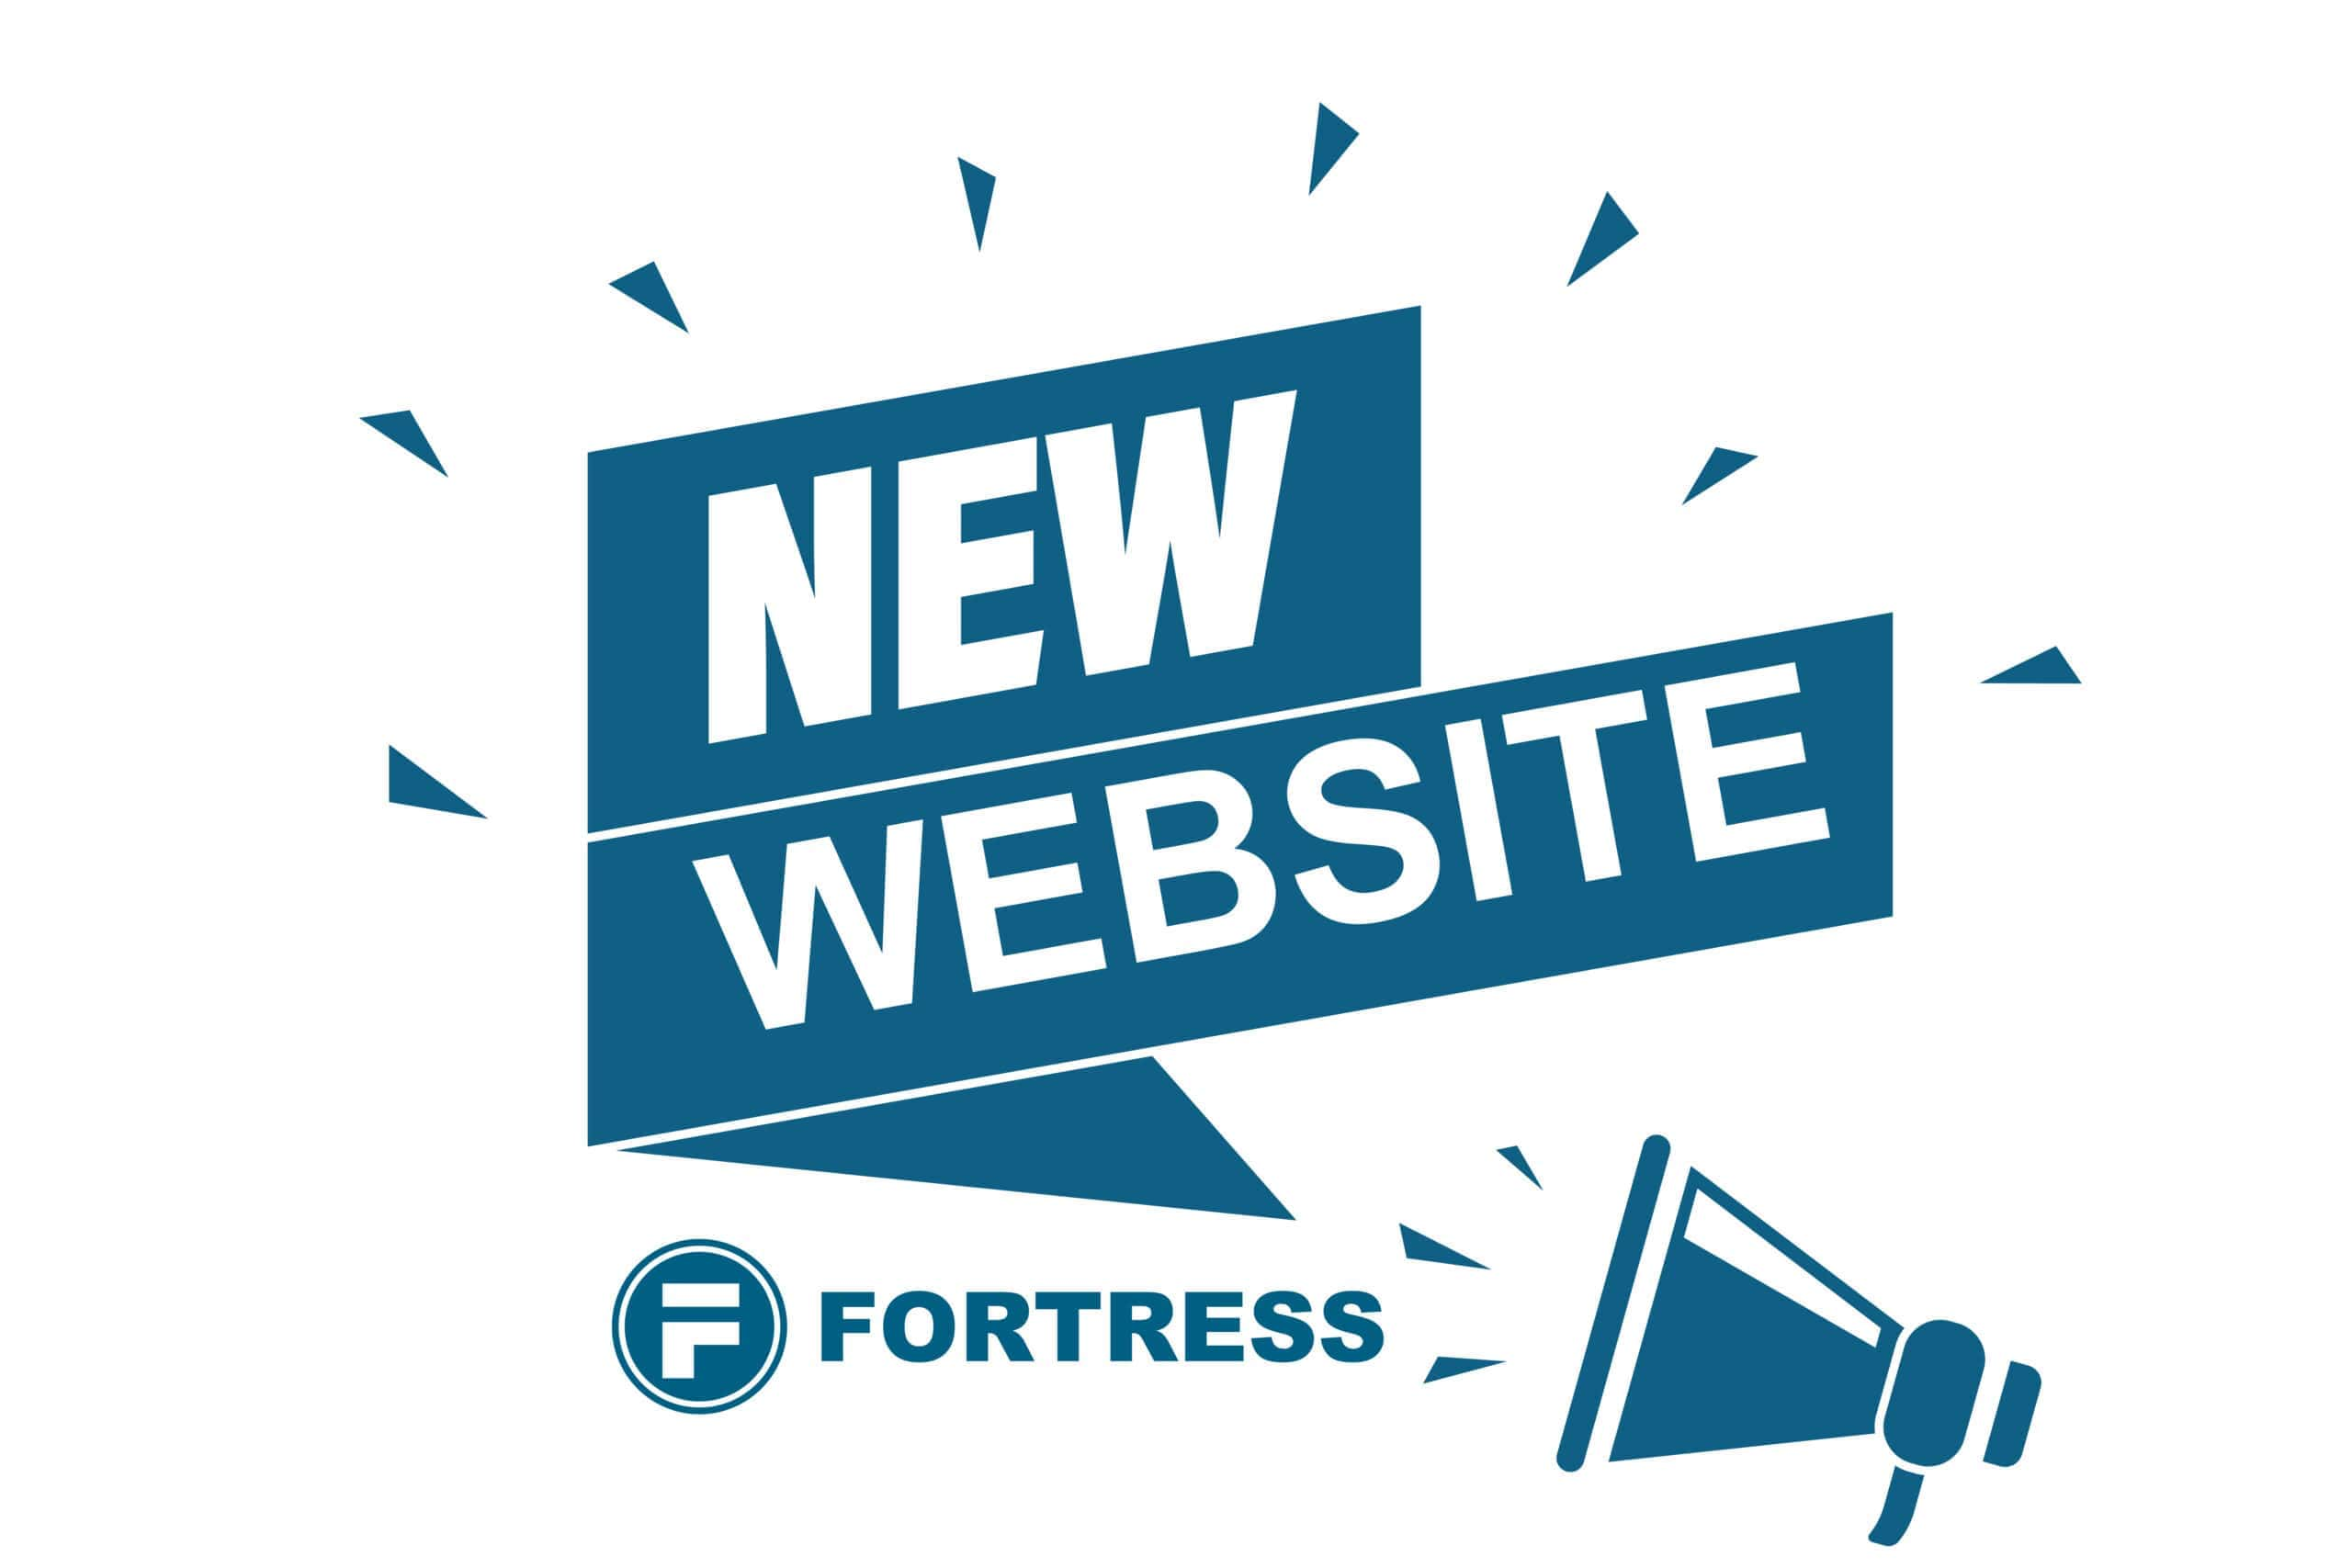 Fortress launches new website!